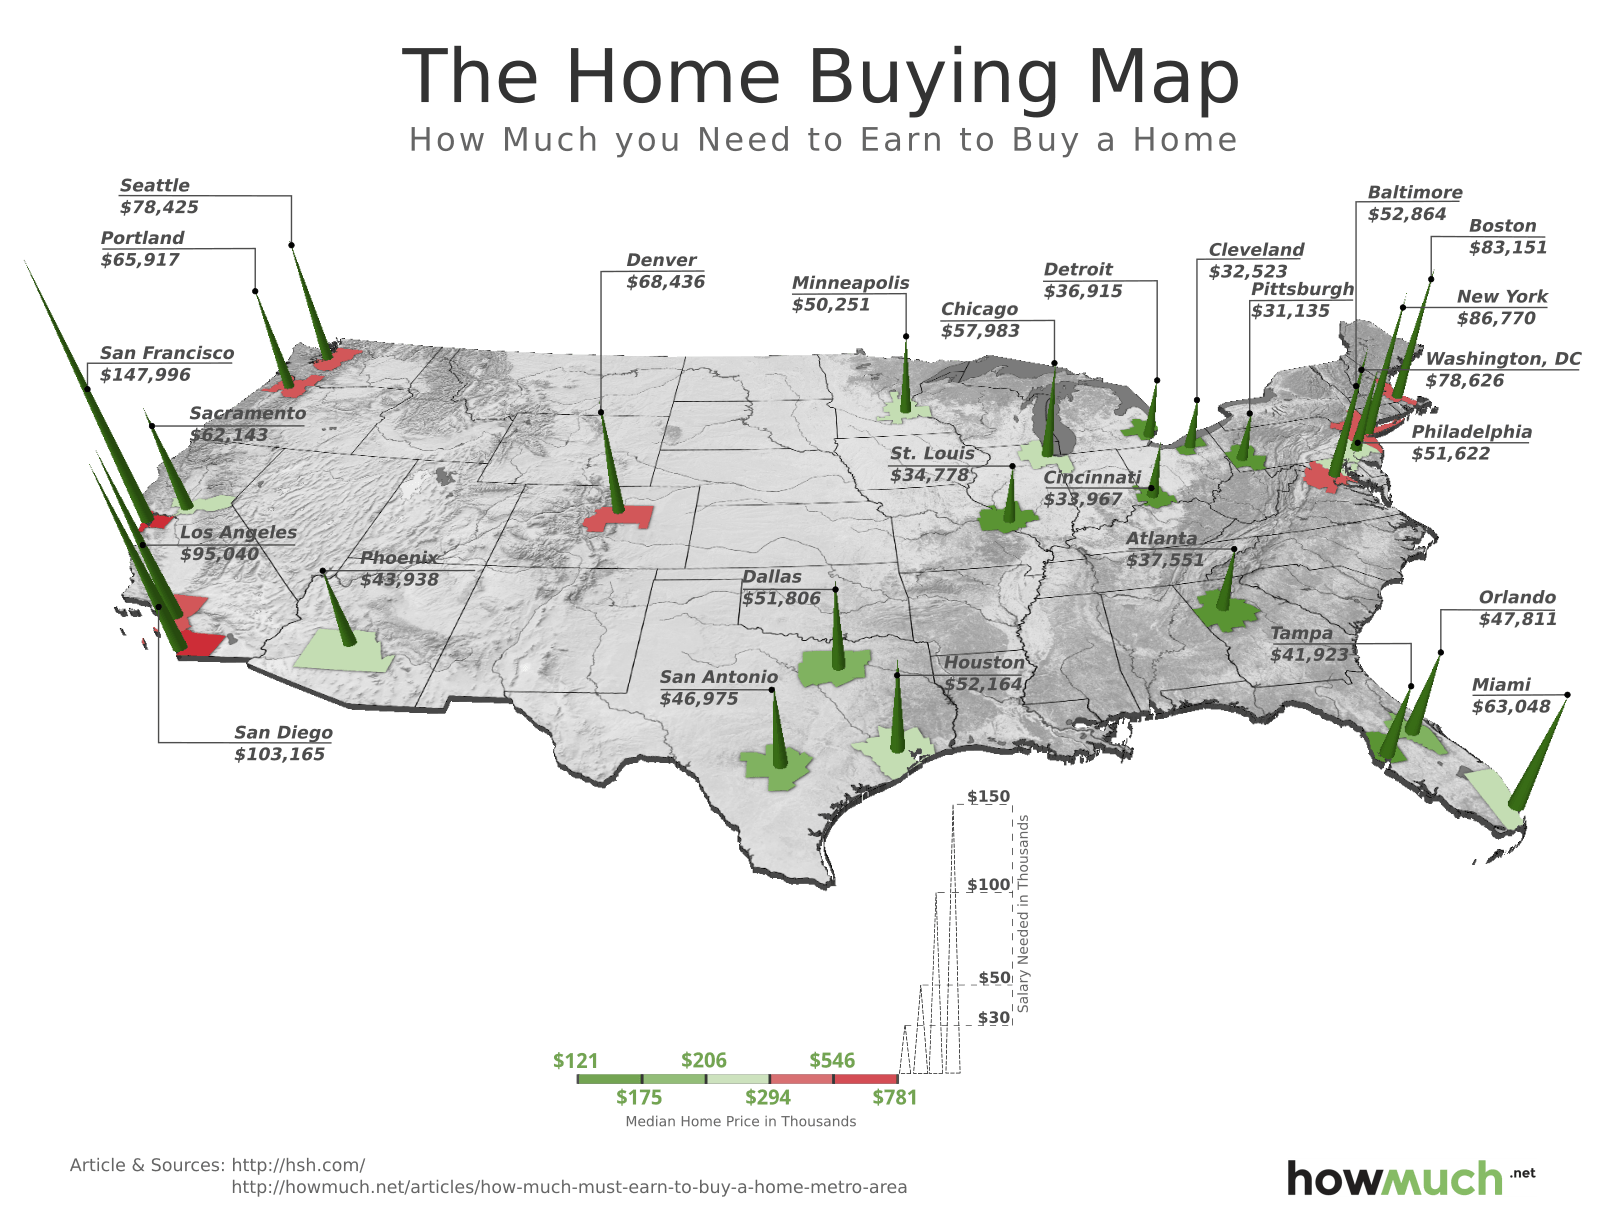 The Home Buying Map